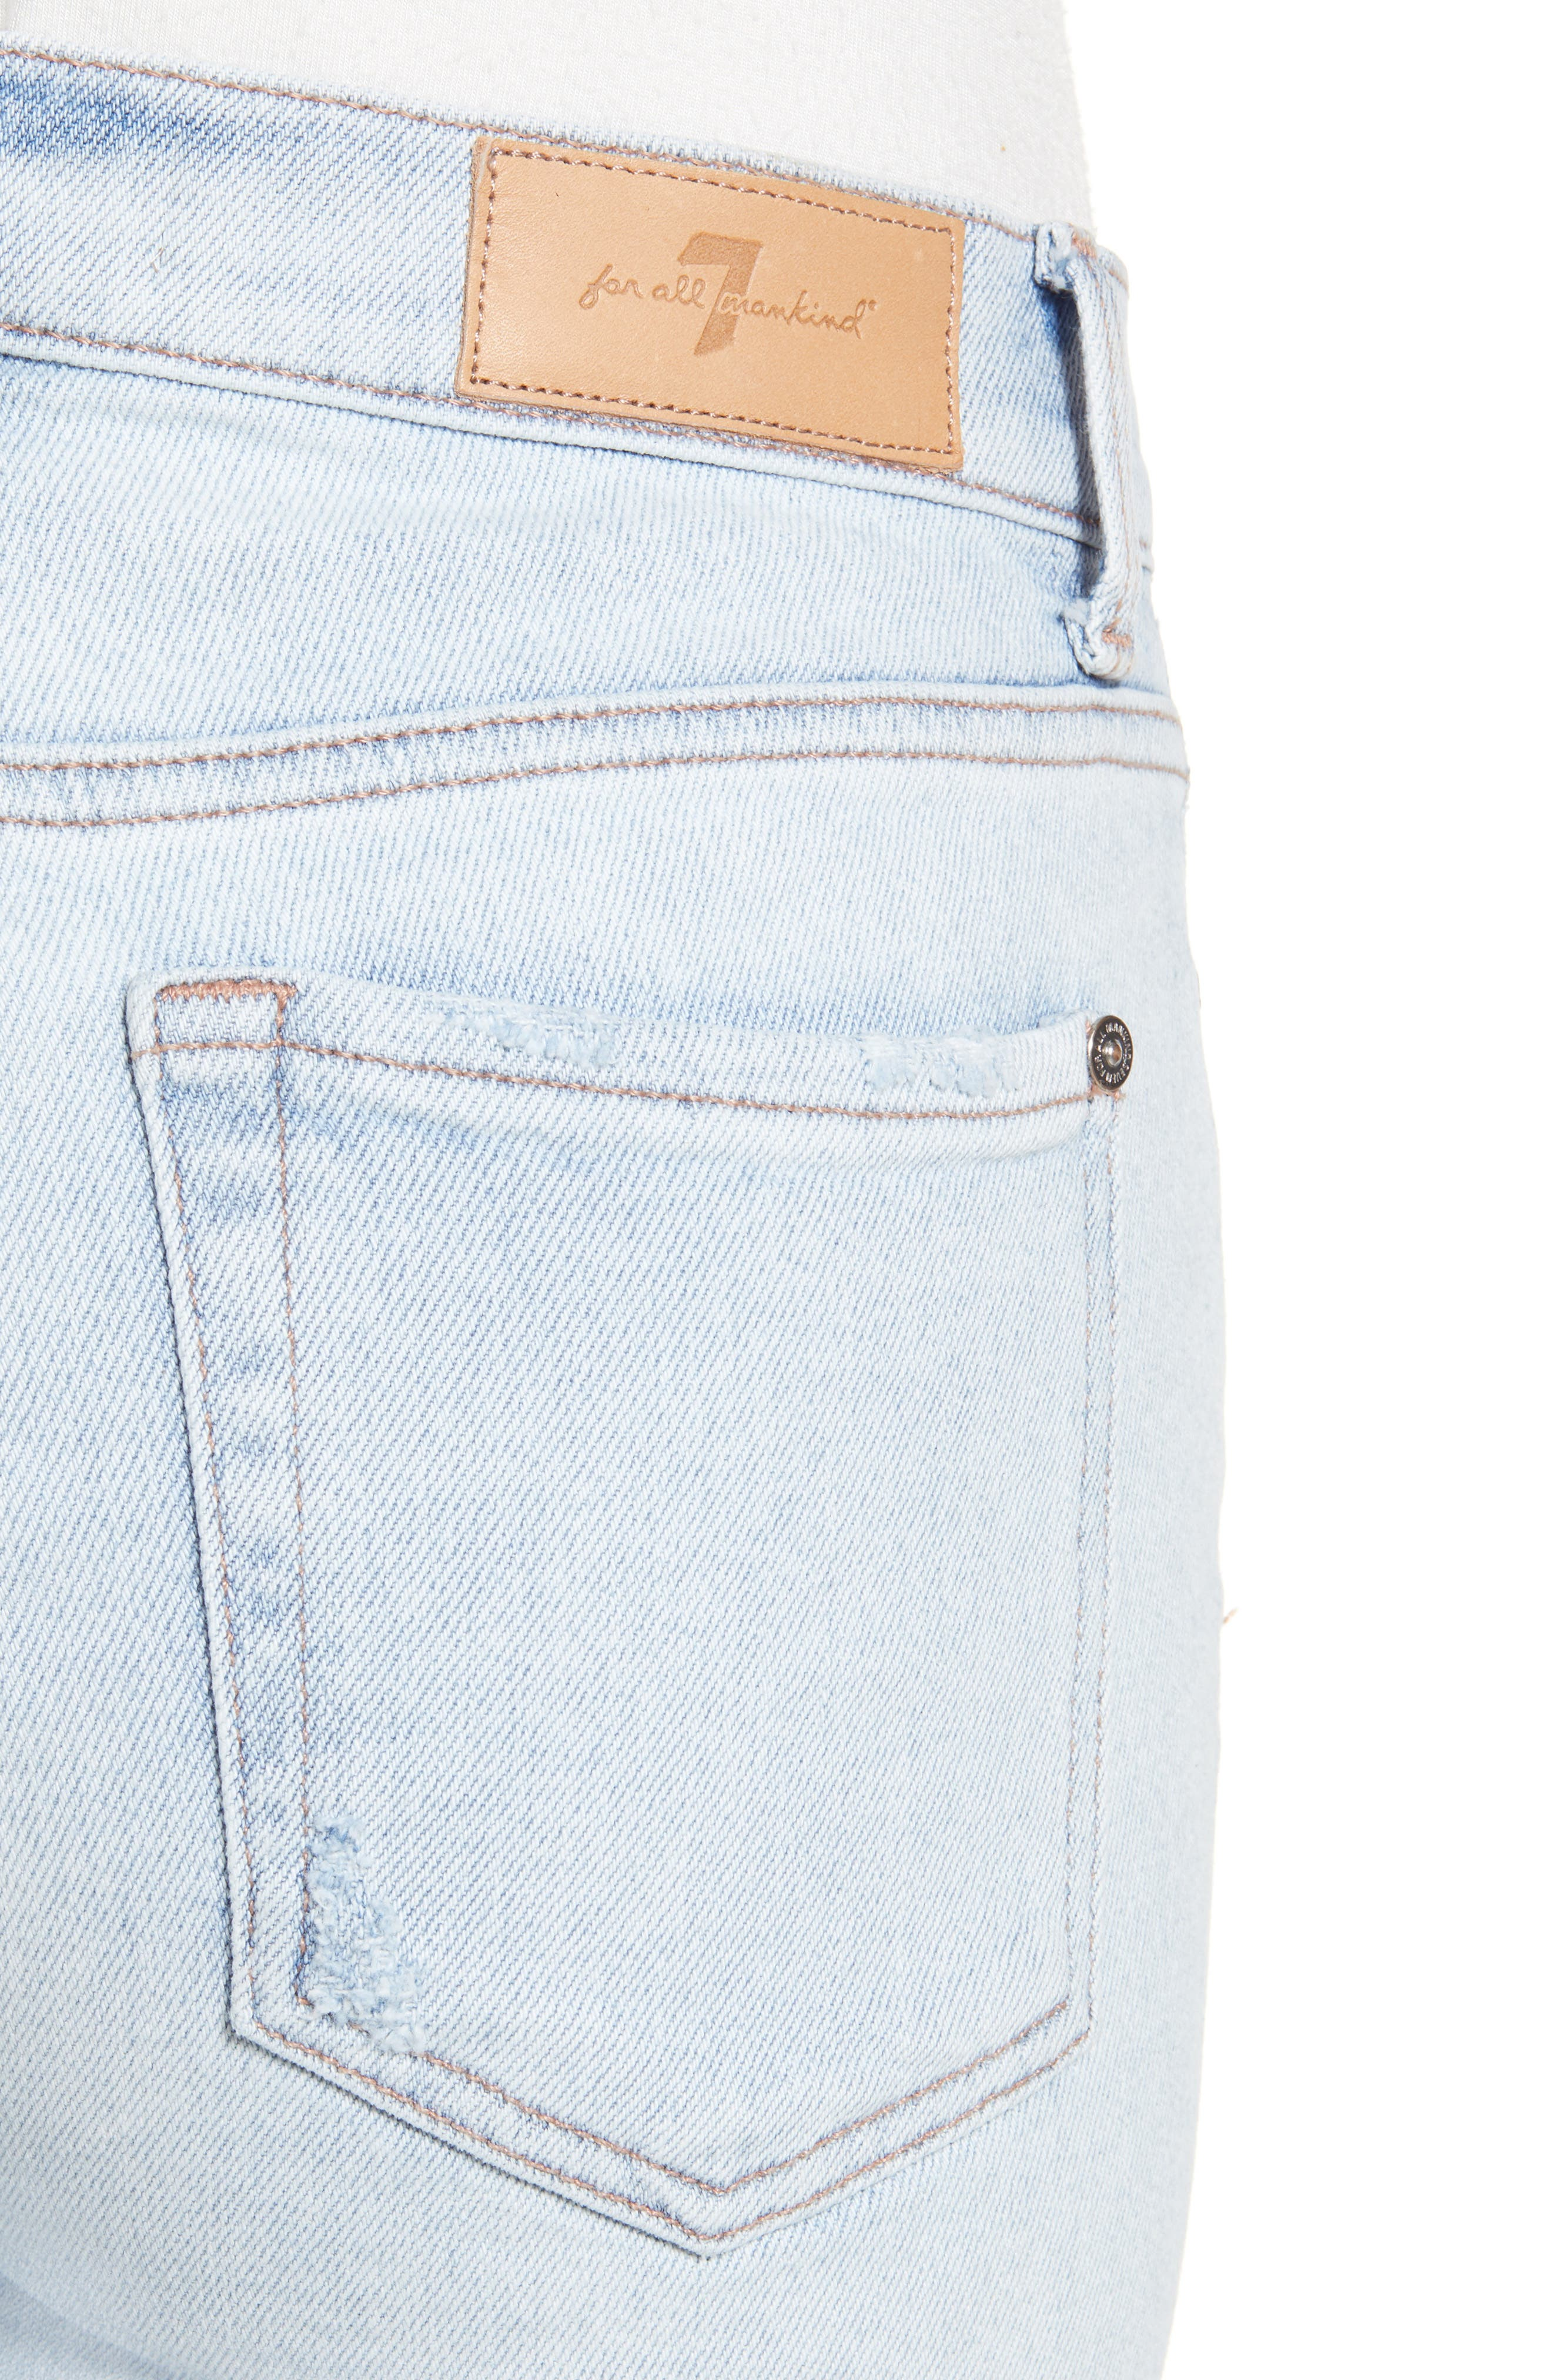 7 FOR ALL MANKIND<SUP>®</SUP>, Luxe Vintage High Waist Ankle Skinny Jeans, Alternate thumbnail 5, color, LUXE VINTAGE CLOUD